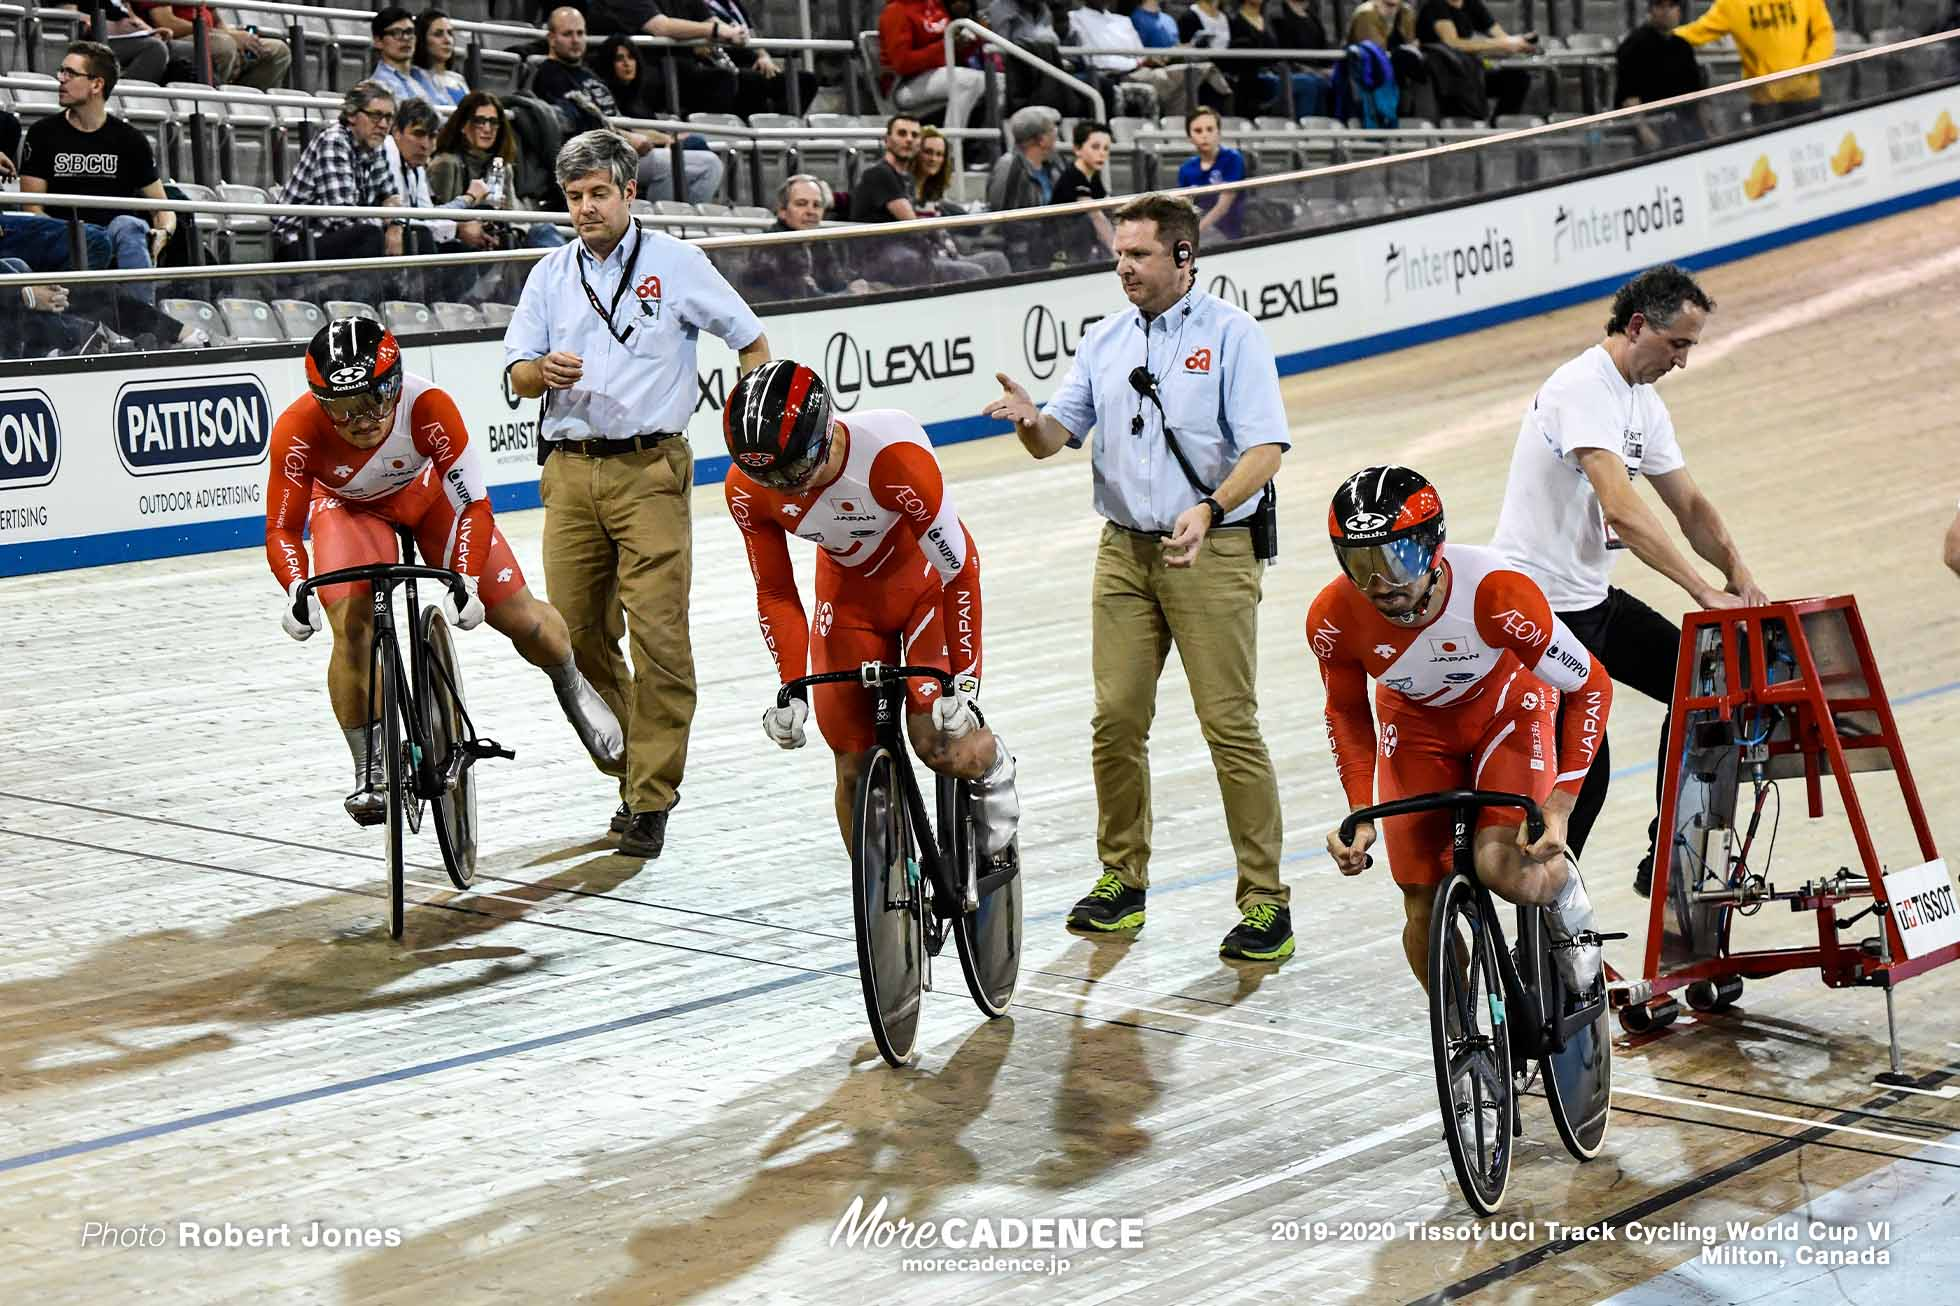 Men's Team Sprint / TISSOT UCI TRACK CYCLING WORLD CUP VI, Milton, Canada, 雨谷一樹, 小原佑太, 松井宏佑